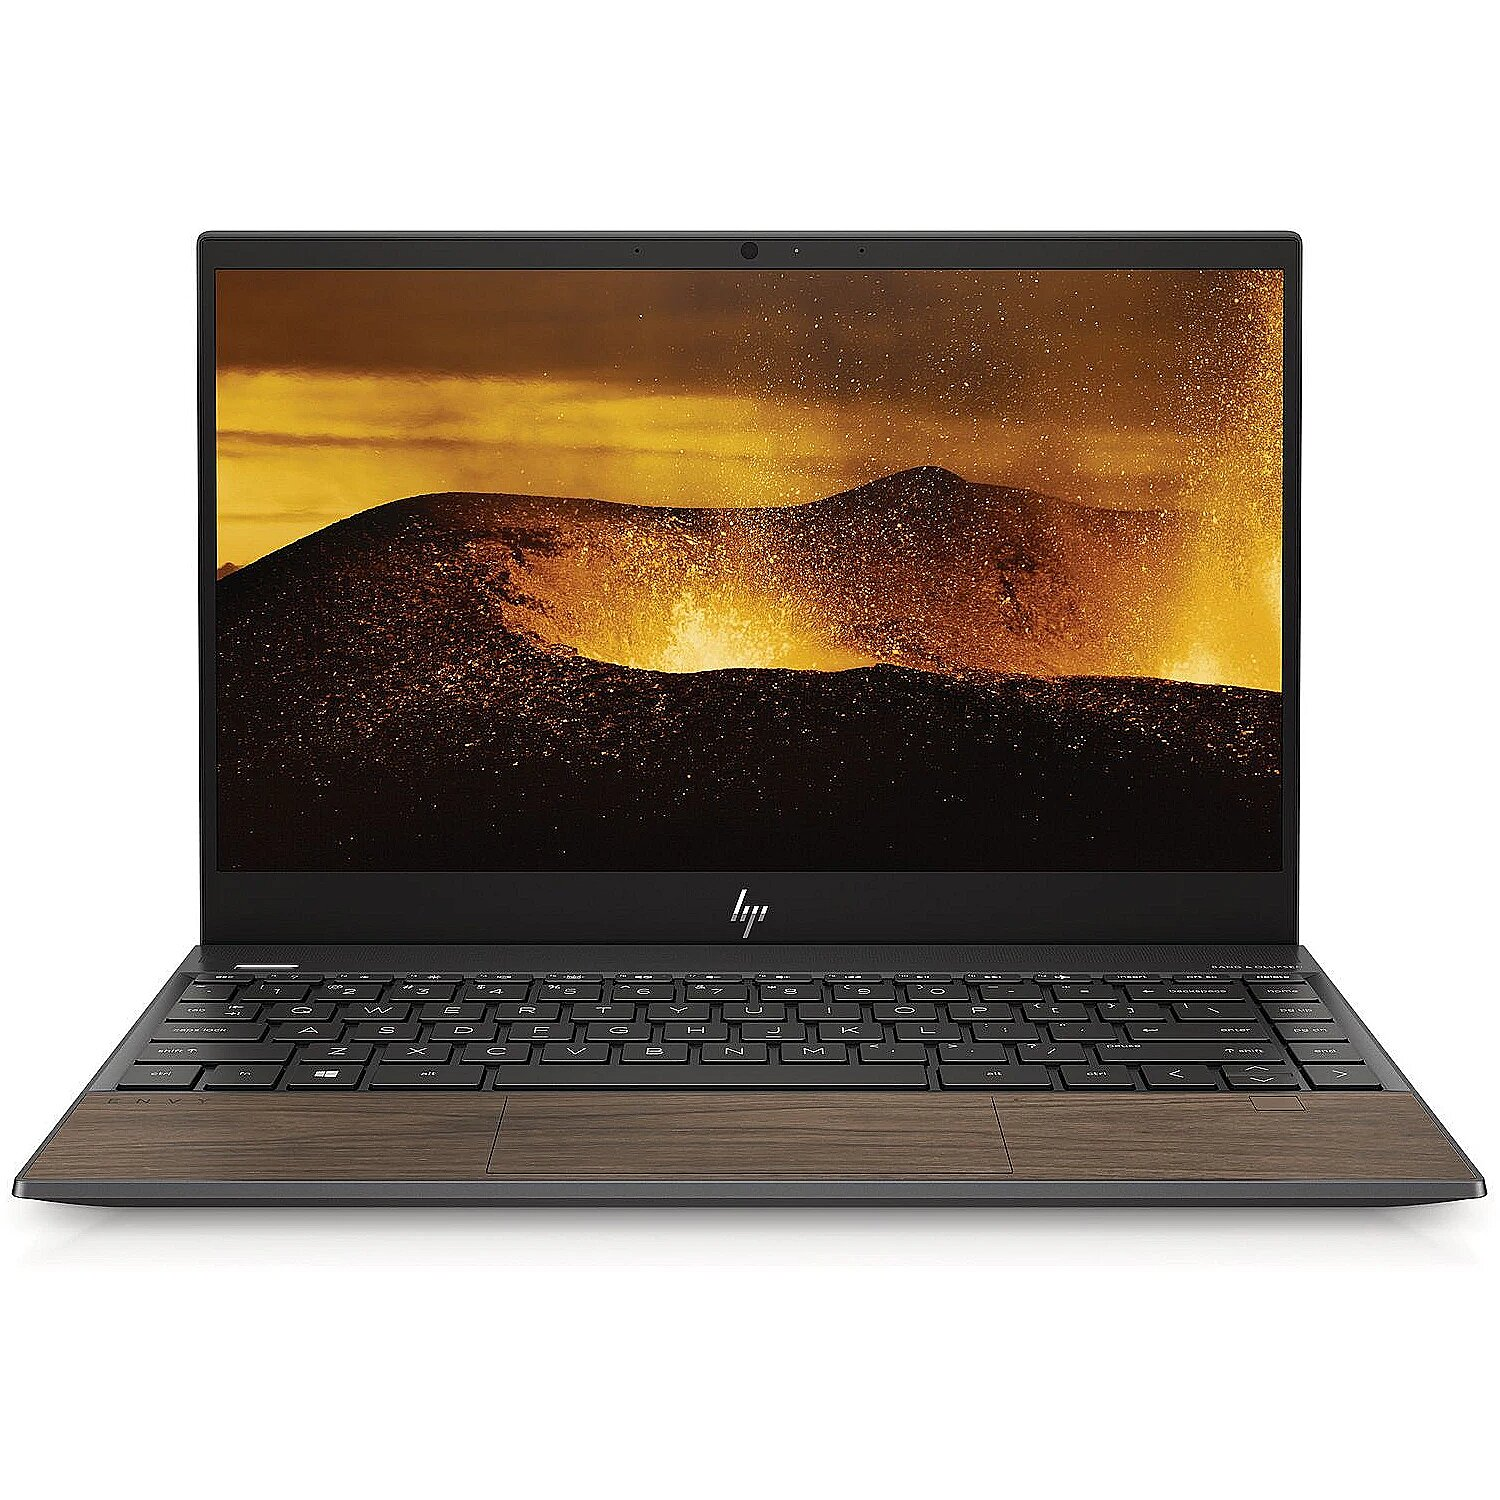 Hewlett Packard ENVY Laptop 13 Nightfall Black Woo..